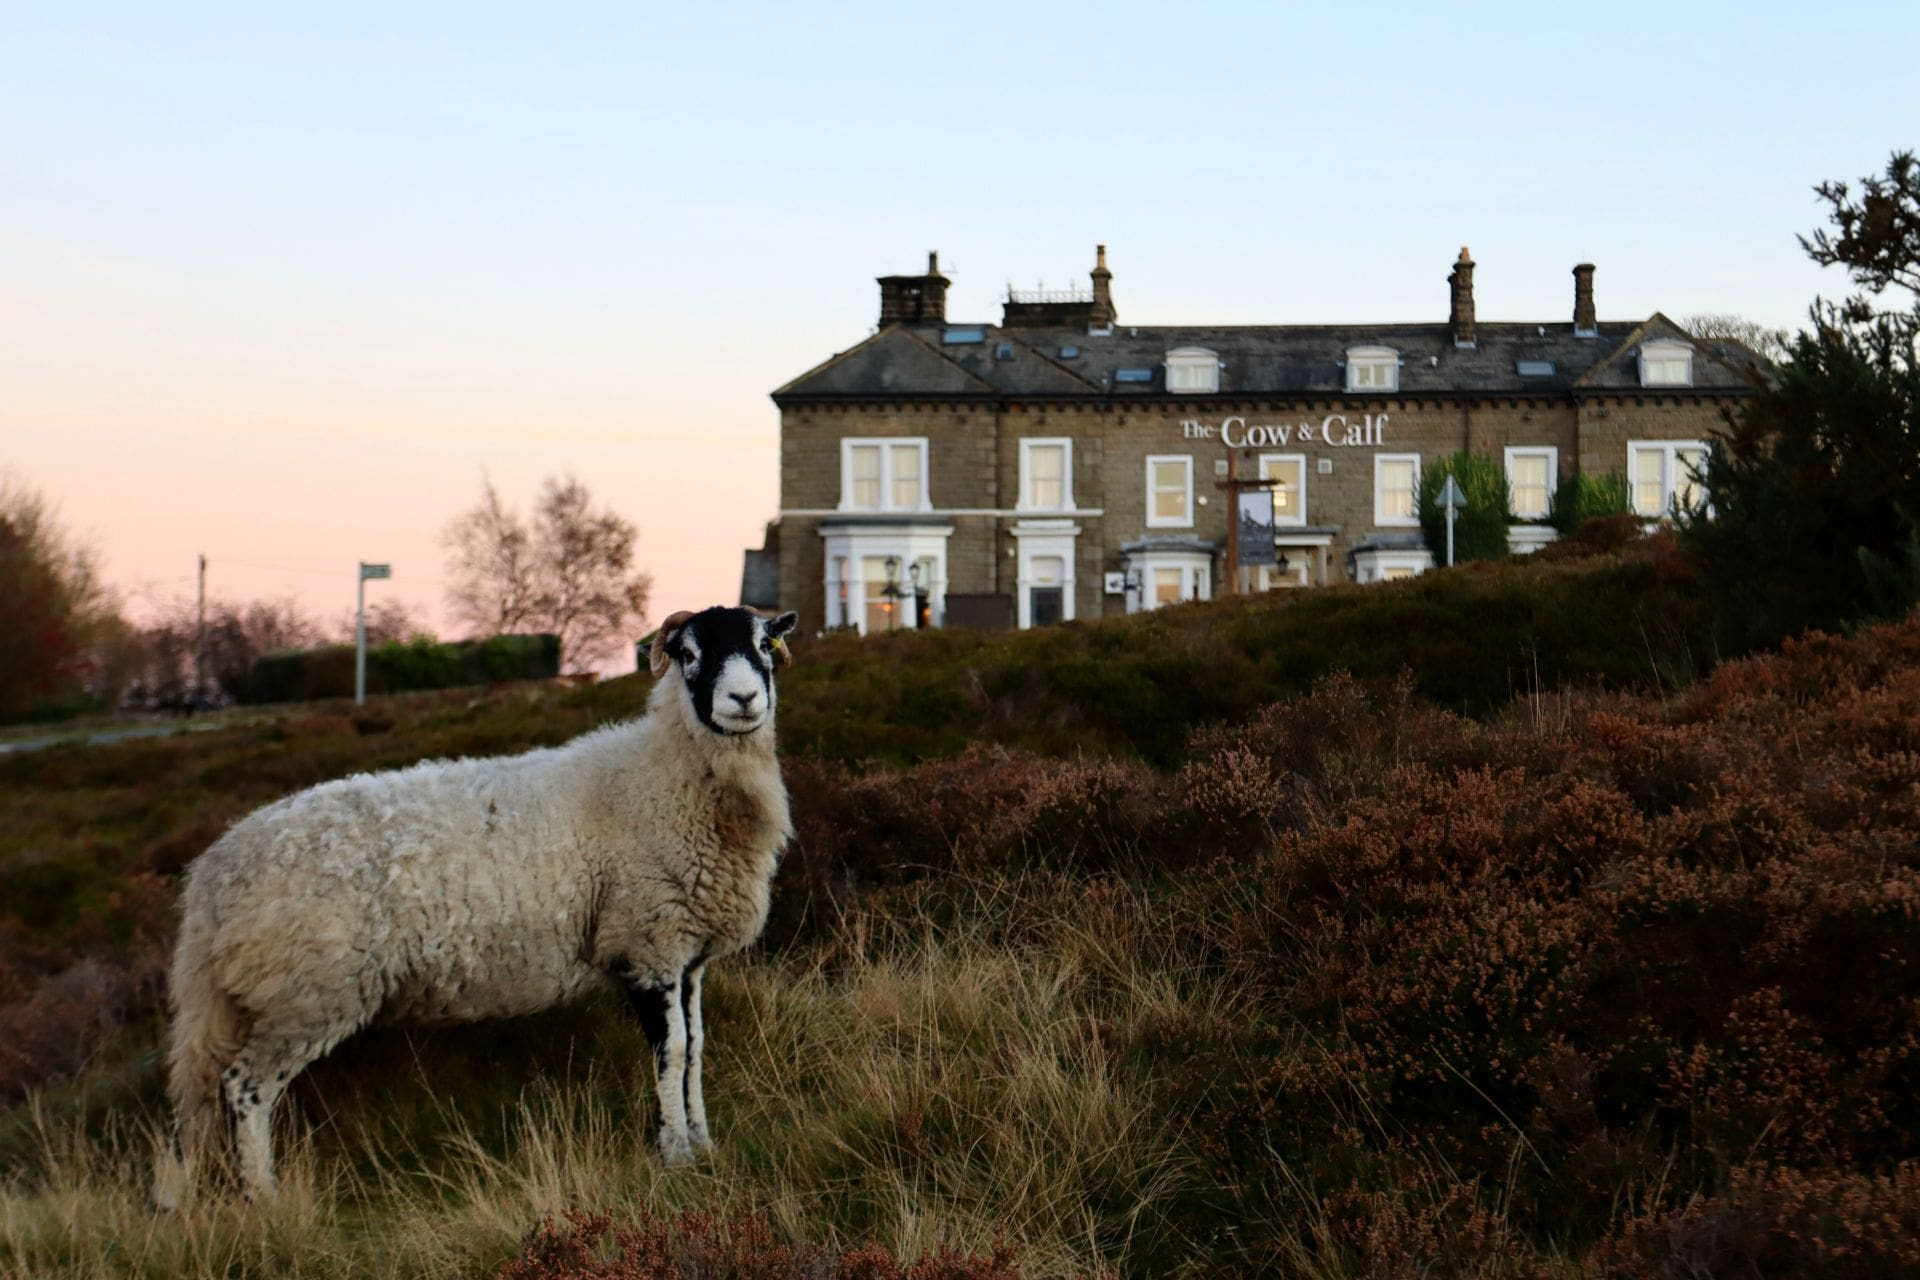 sheep-standing-on-rugged-moors-in-front-of-pub-the-cow-and-calf-in-ilkley-england-uk-day-trips-from-leeds